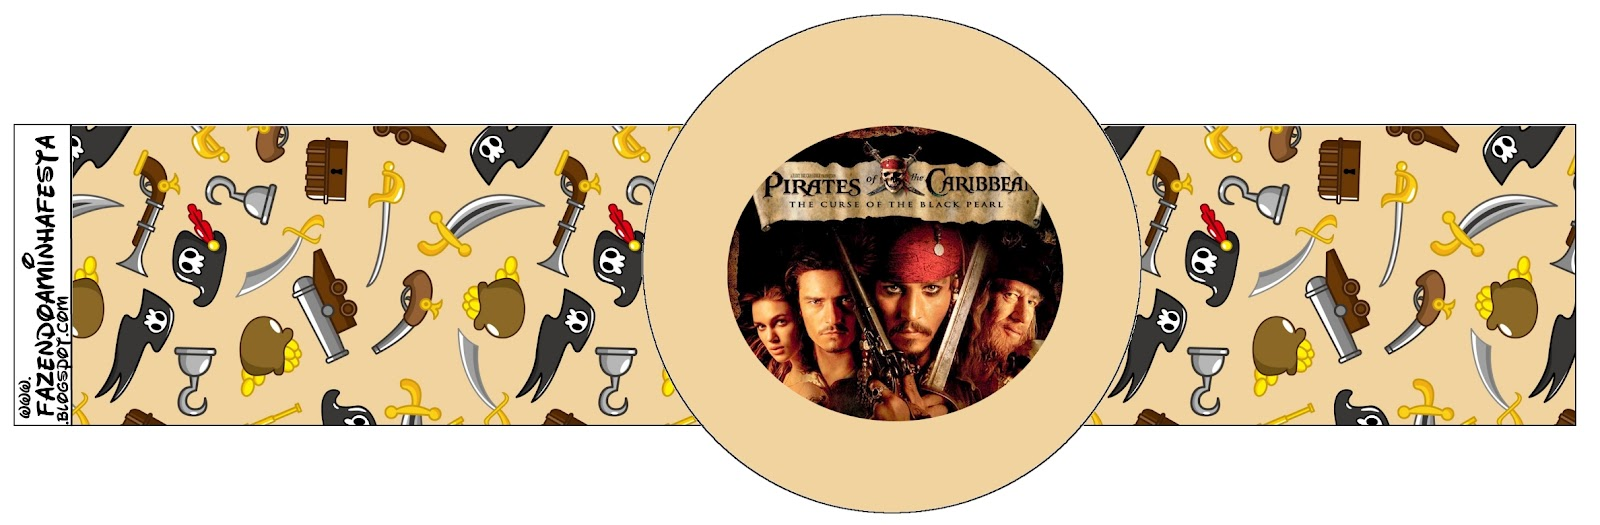 pirates caribbean tvalerts paper - photo #34